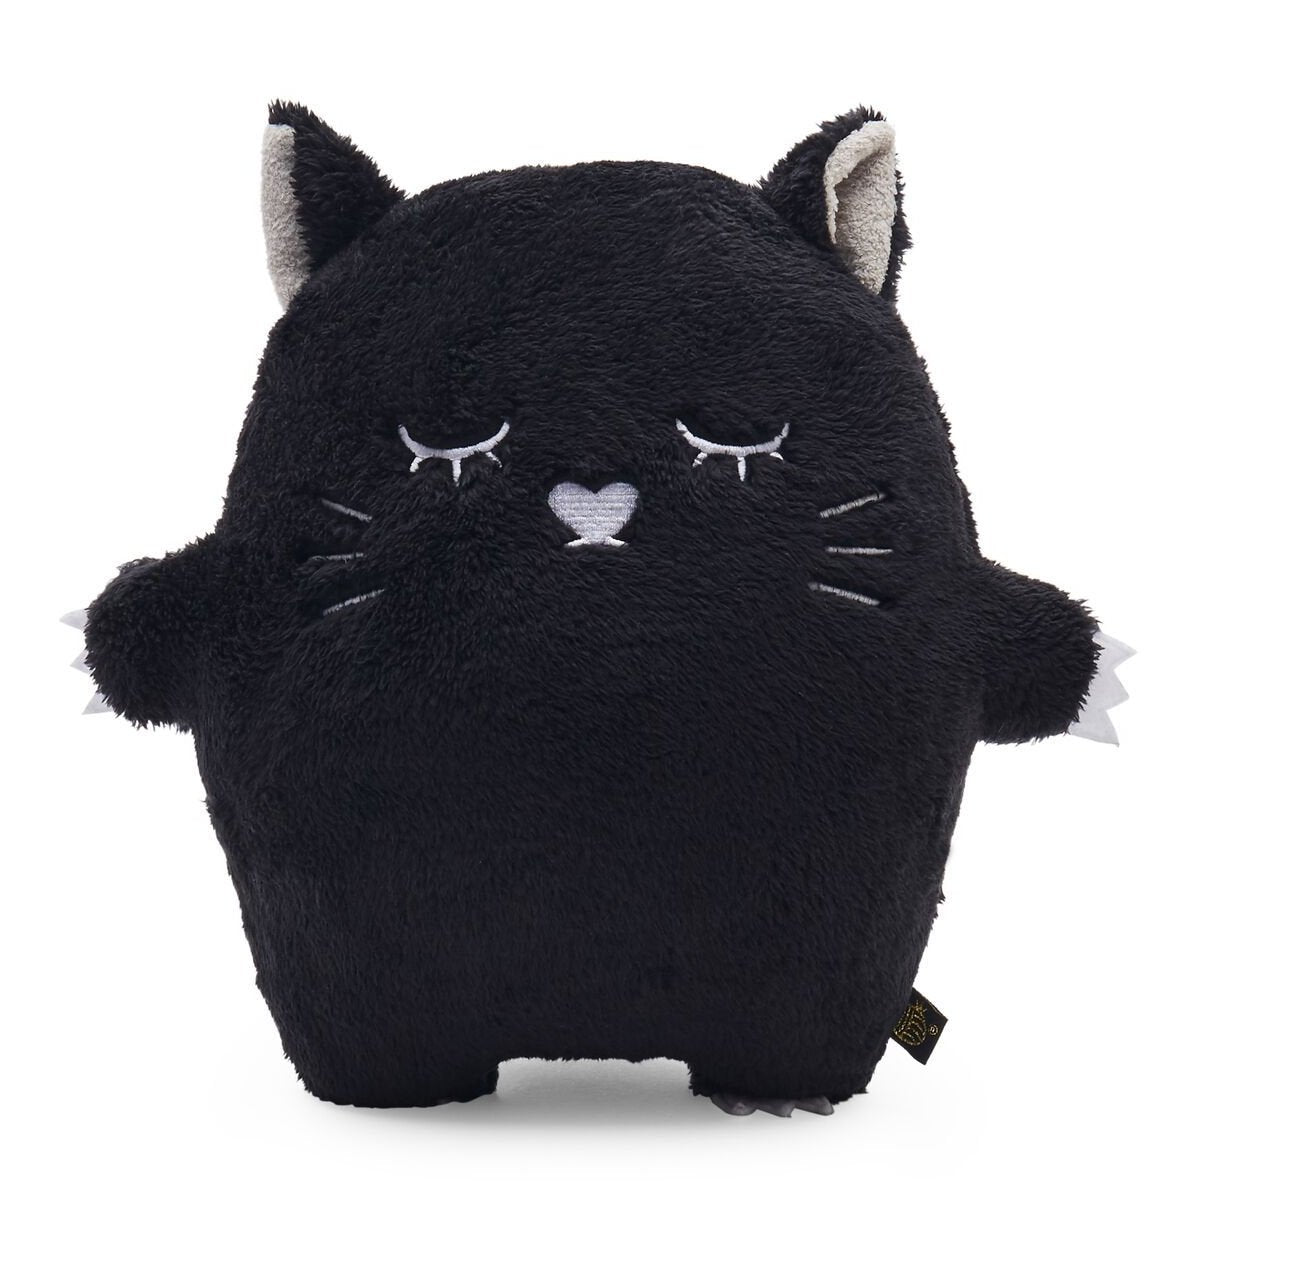 Noodoll Ricemomo Cat Doll on DLK | designlifekids.com